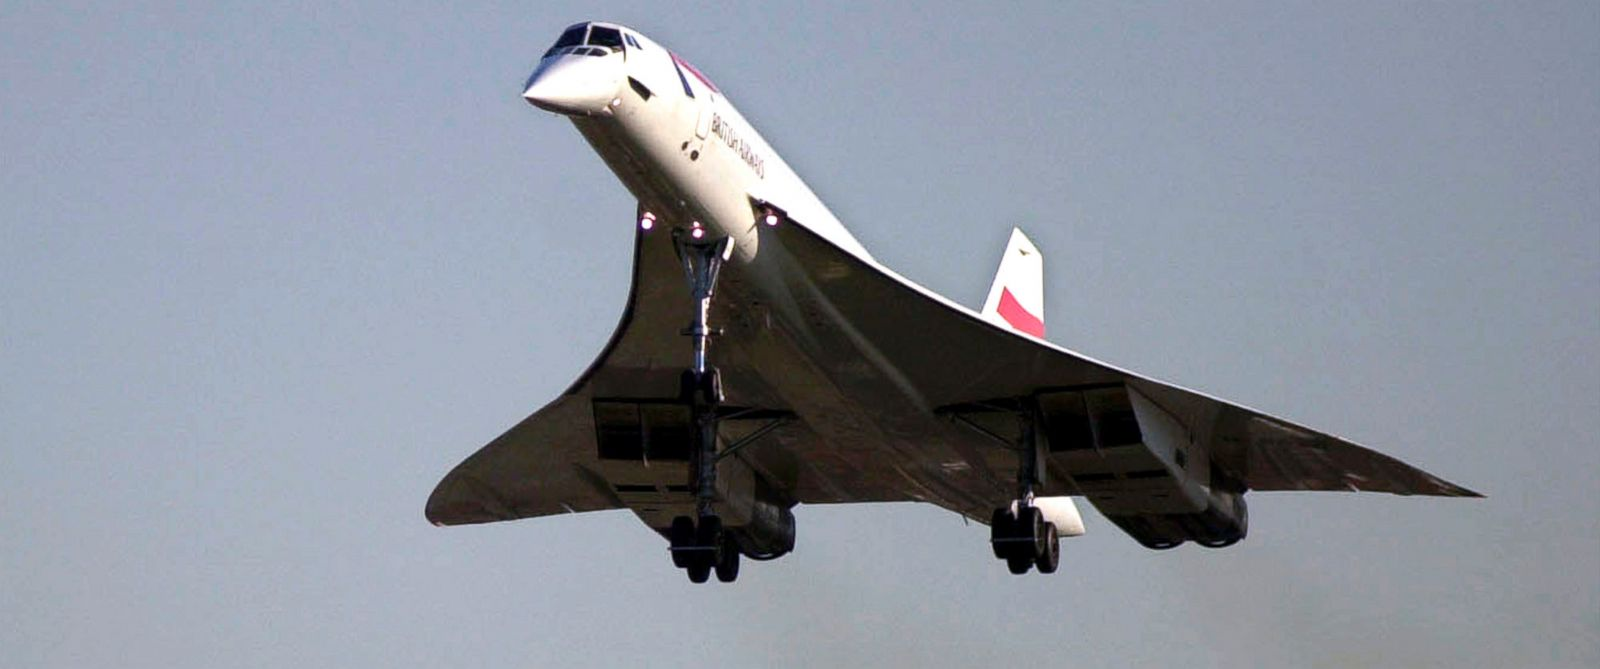 PHOTO: A British Airways Concorde comes in for a landing at Boeing Field in Seattle, Nov 5, 2003.